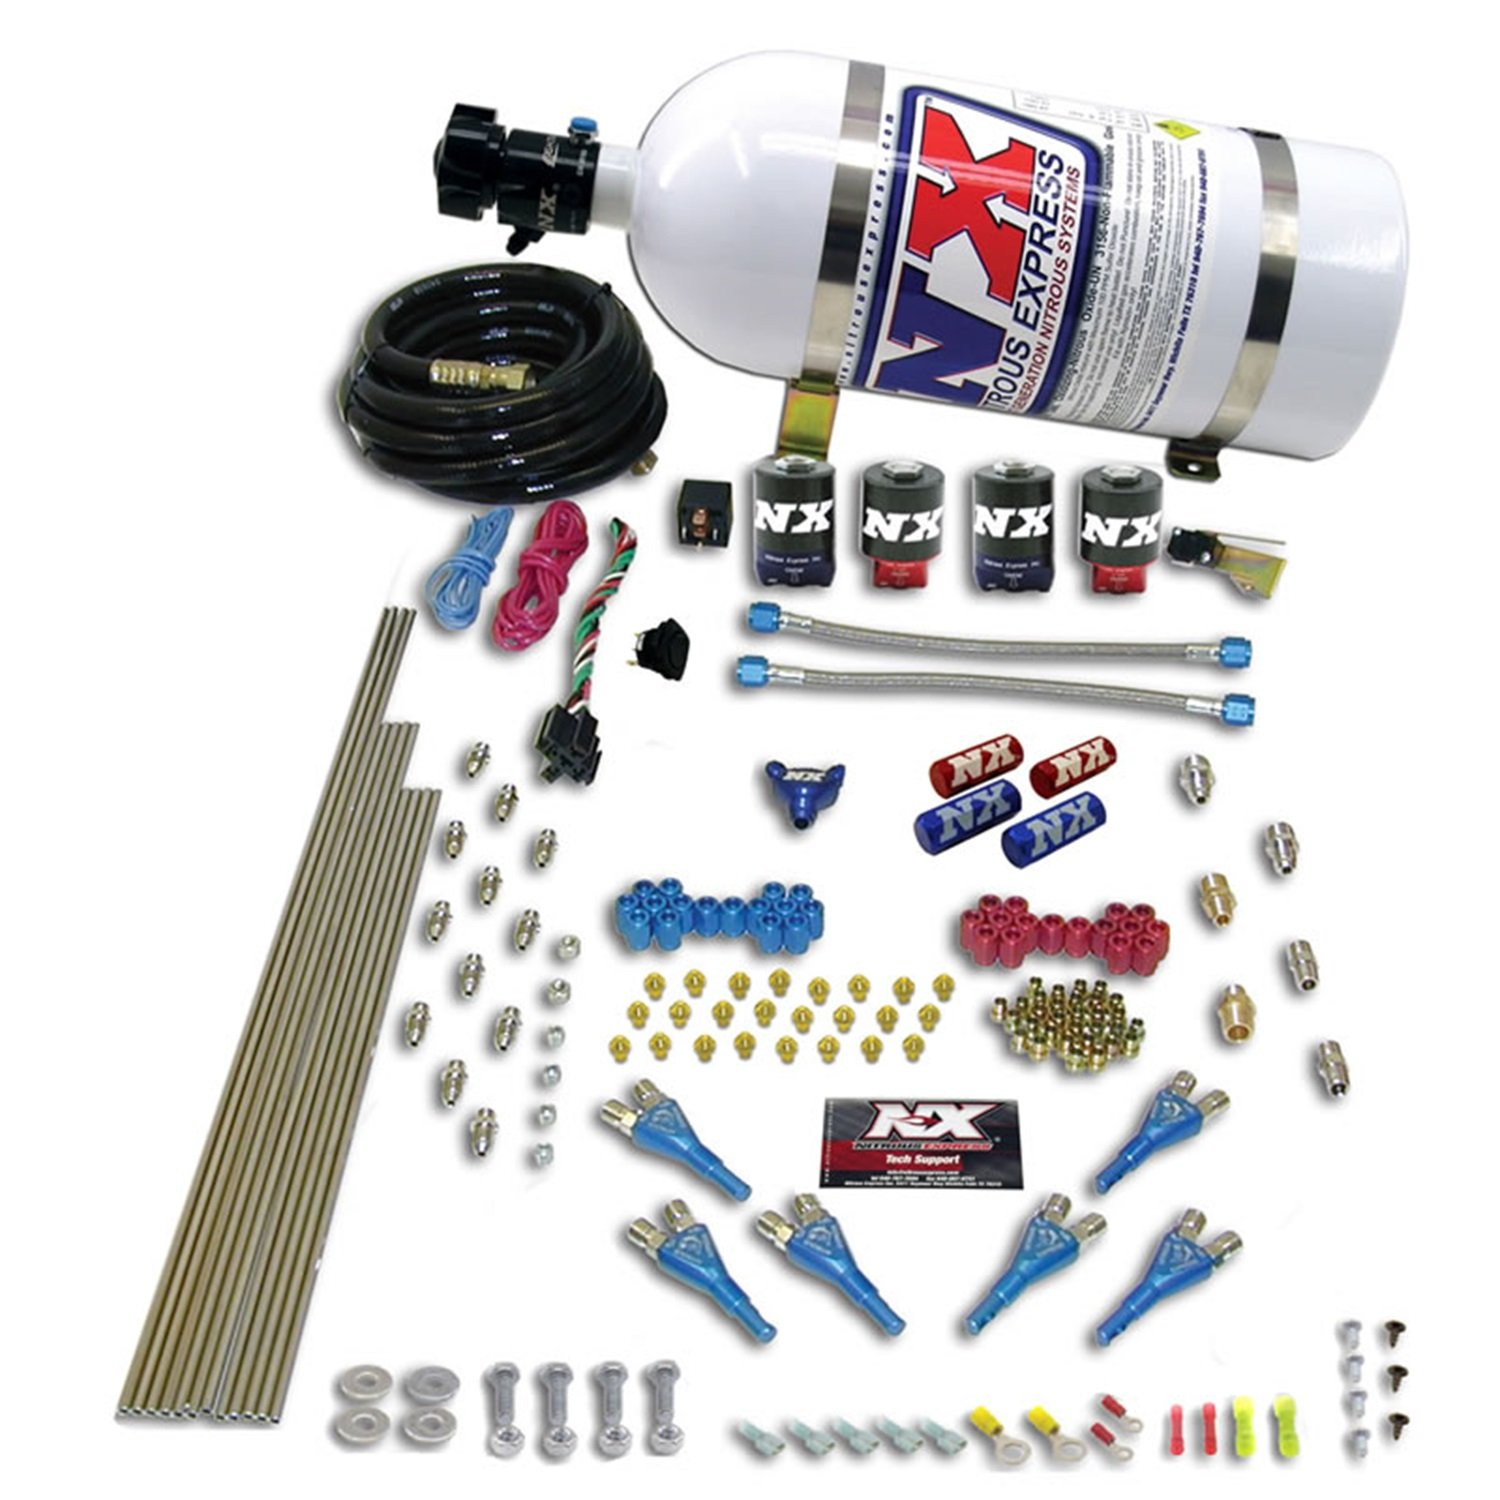 Nitrous Express 90065-00 200-600 HP 8-Cylinder Alcohol Pro Shark Direct Port System with 4 Solenoids